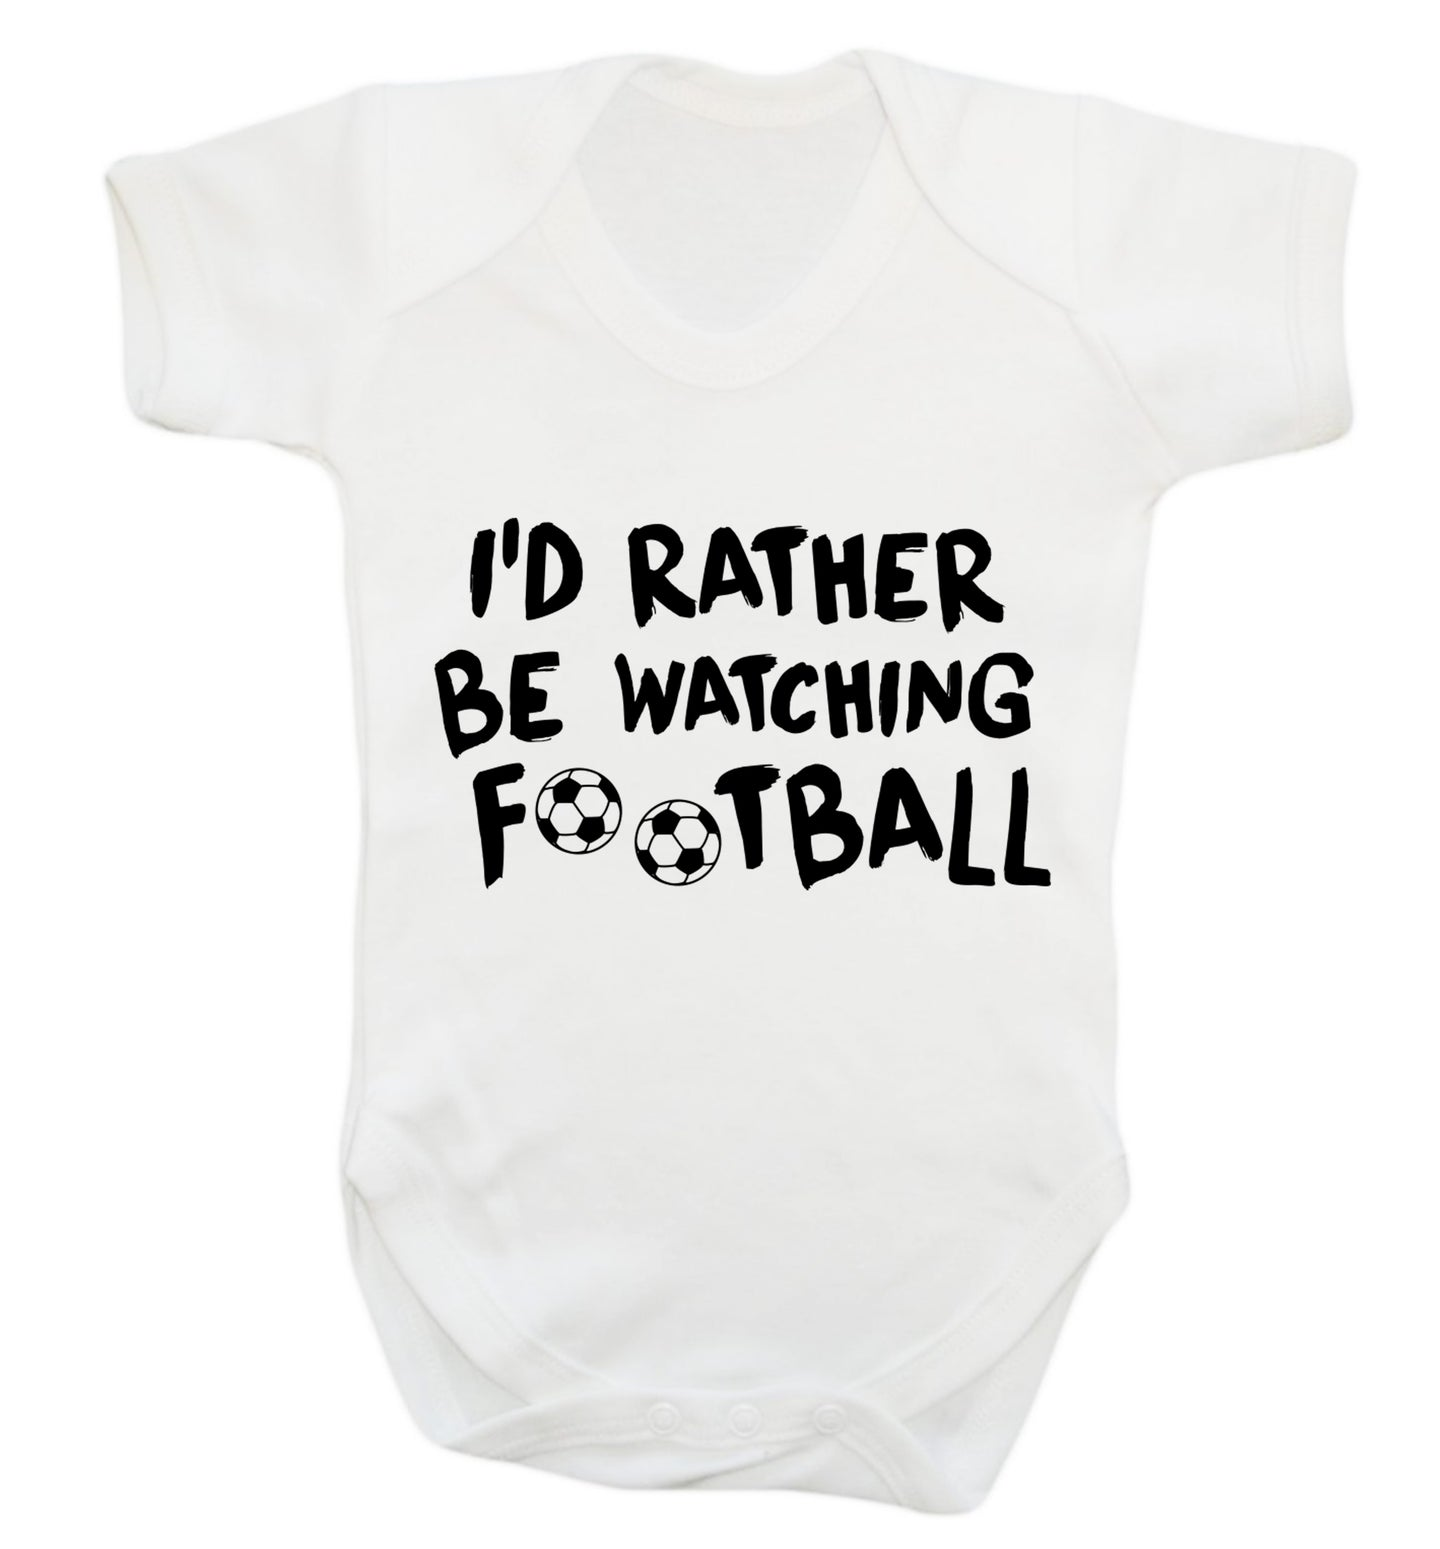 I'd rather be watching football Baby Vest white 18-24 months